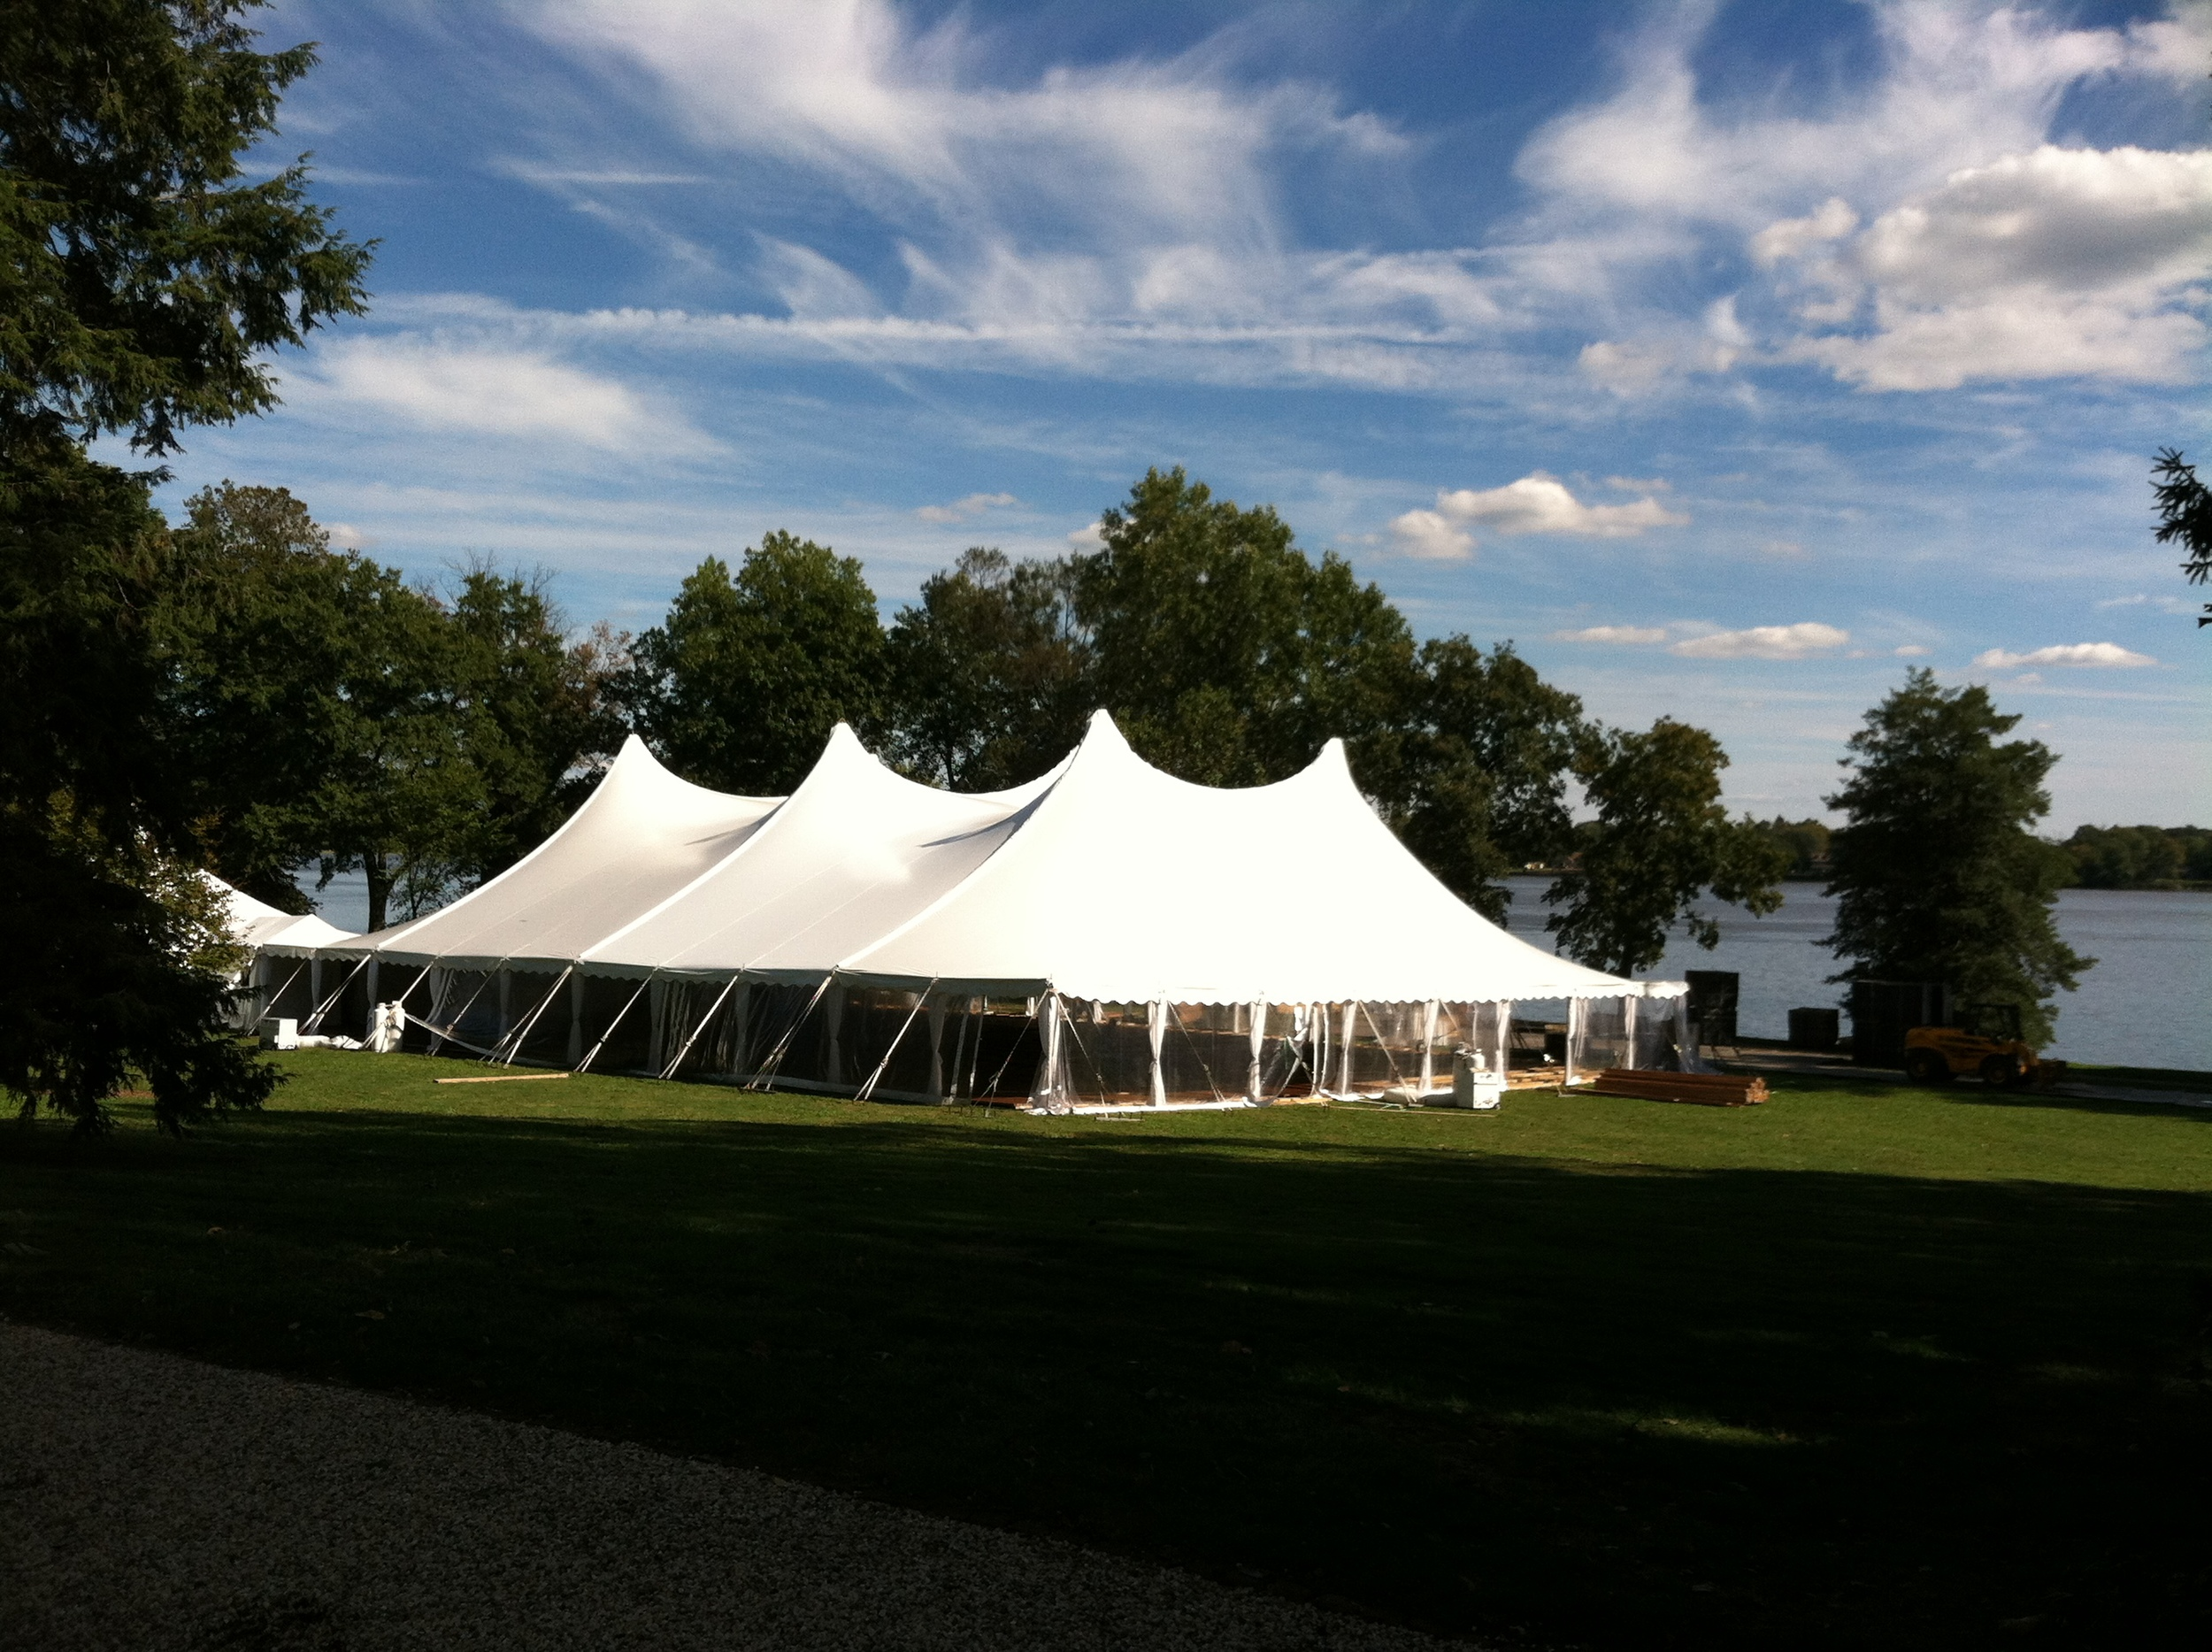 Tent installation complete